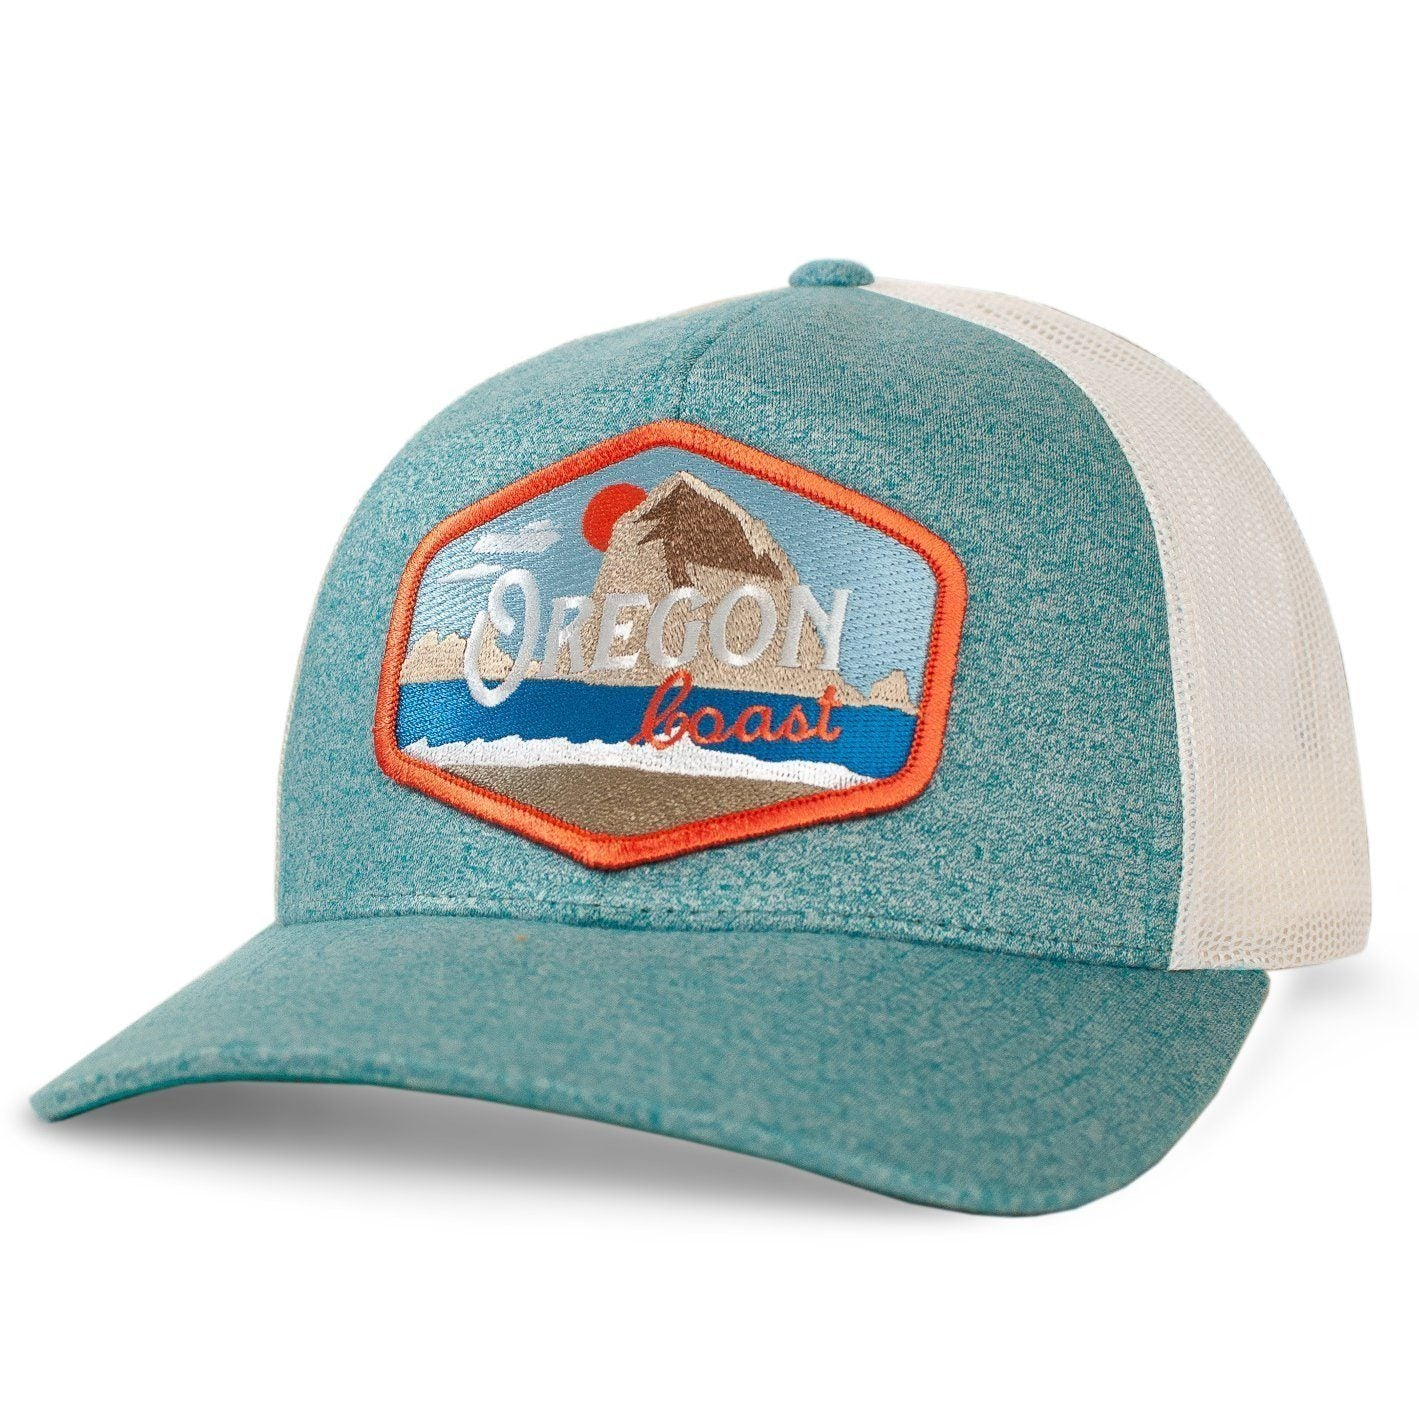 Little Bay Root - Oregon Coast Vintage Curved Bill Trucker Hat - Knock Your Socks Off